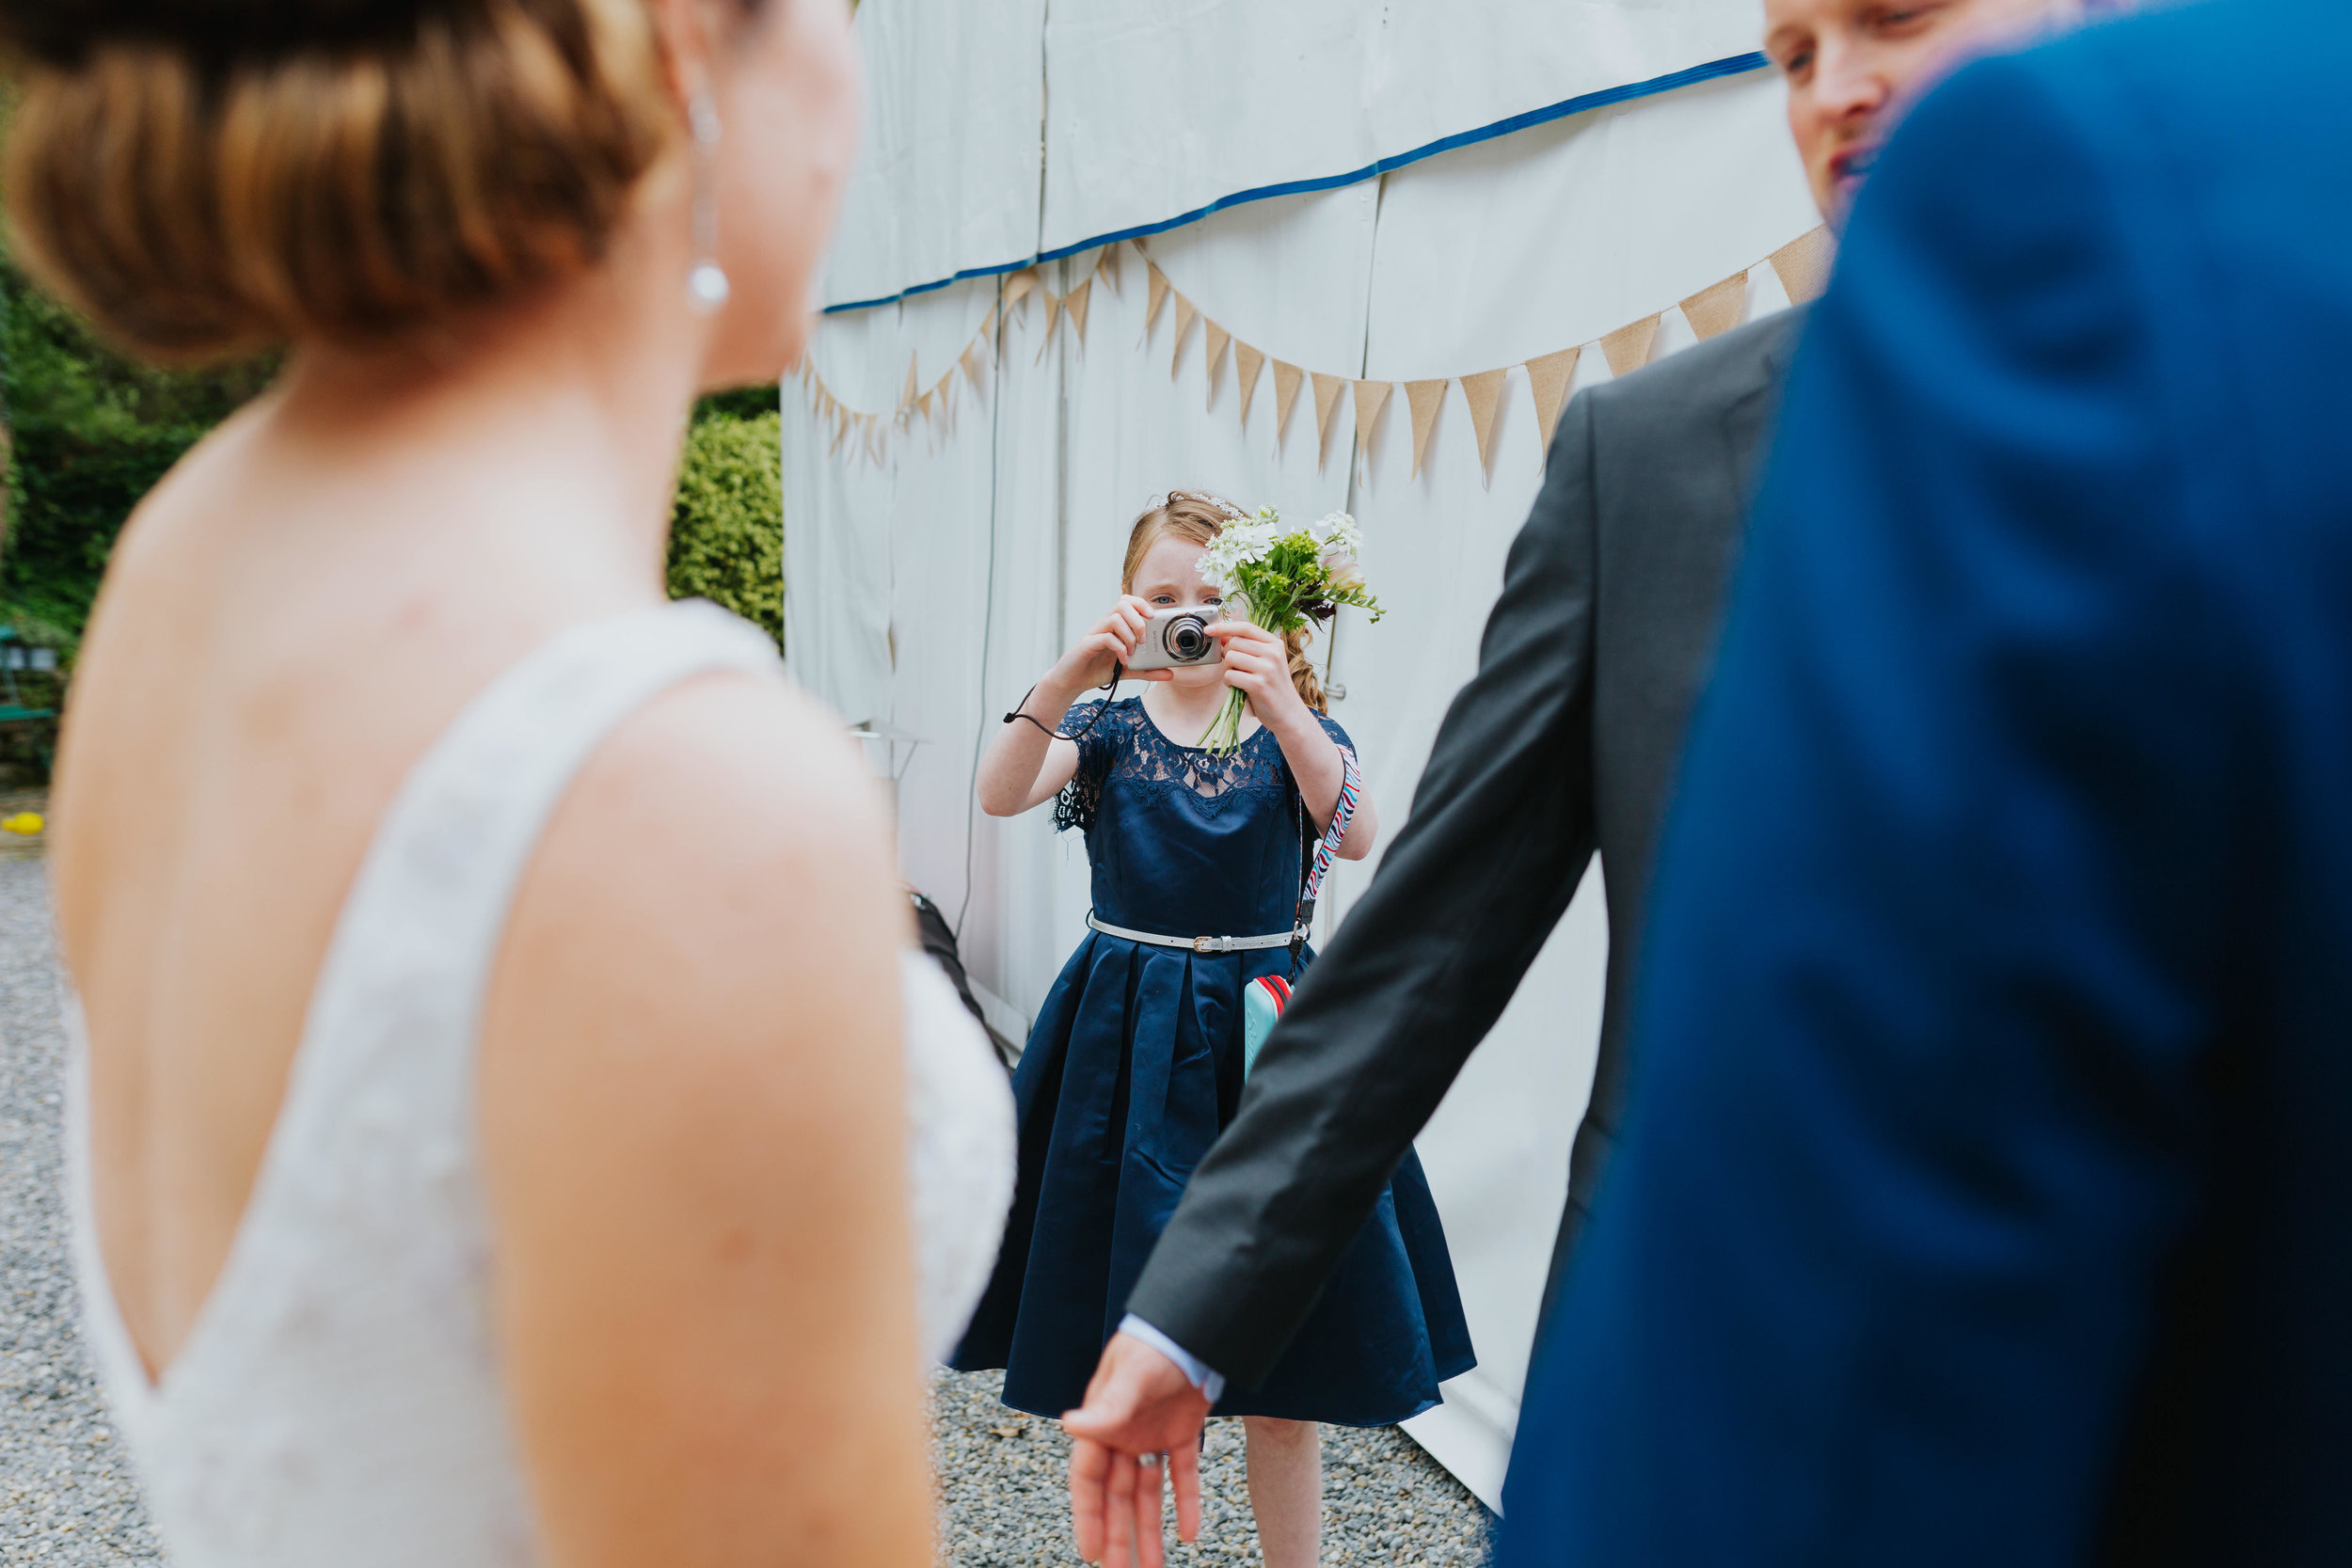 e+t_ballilogue_kilkenny_wedding_photographer_liviafigueiredo_108.JPG